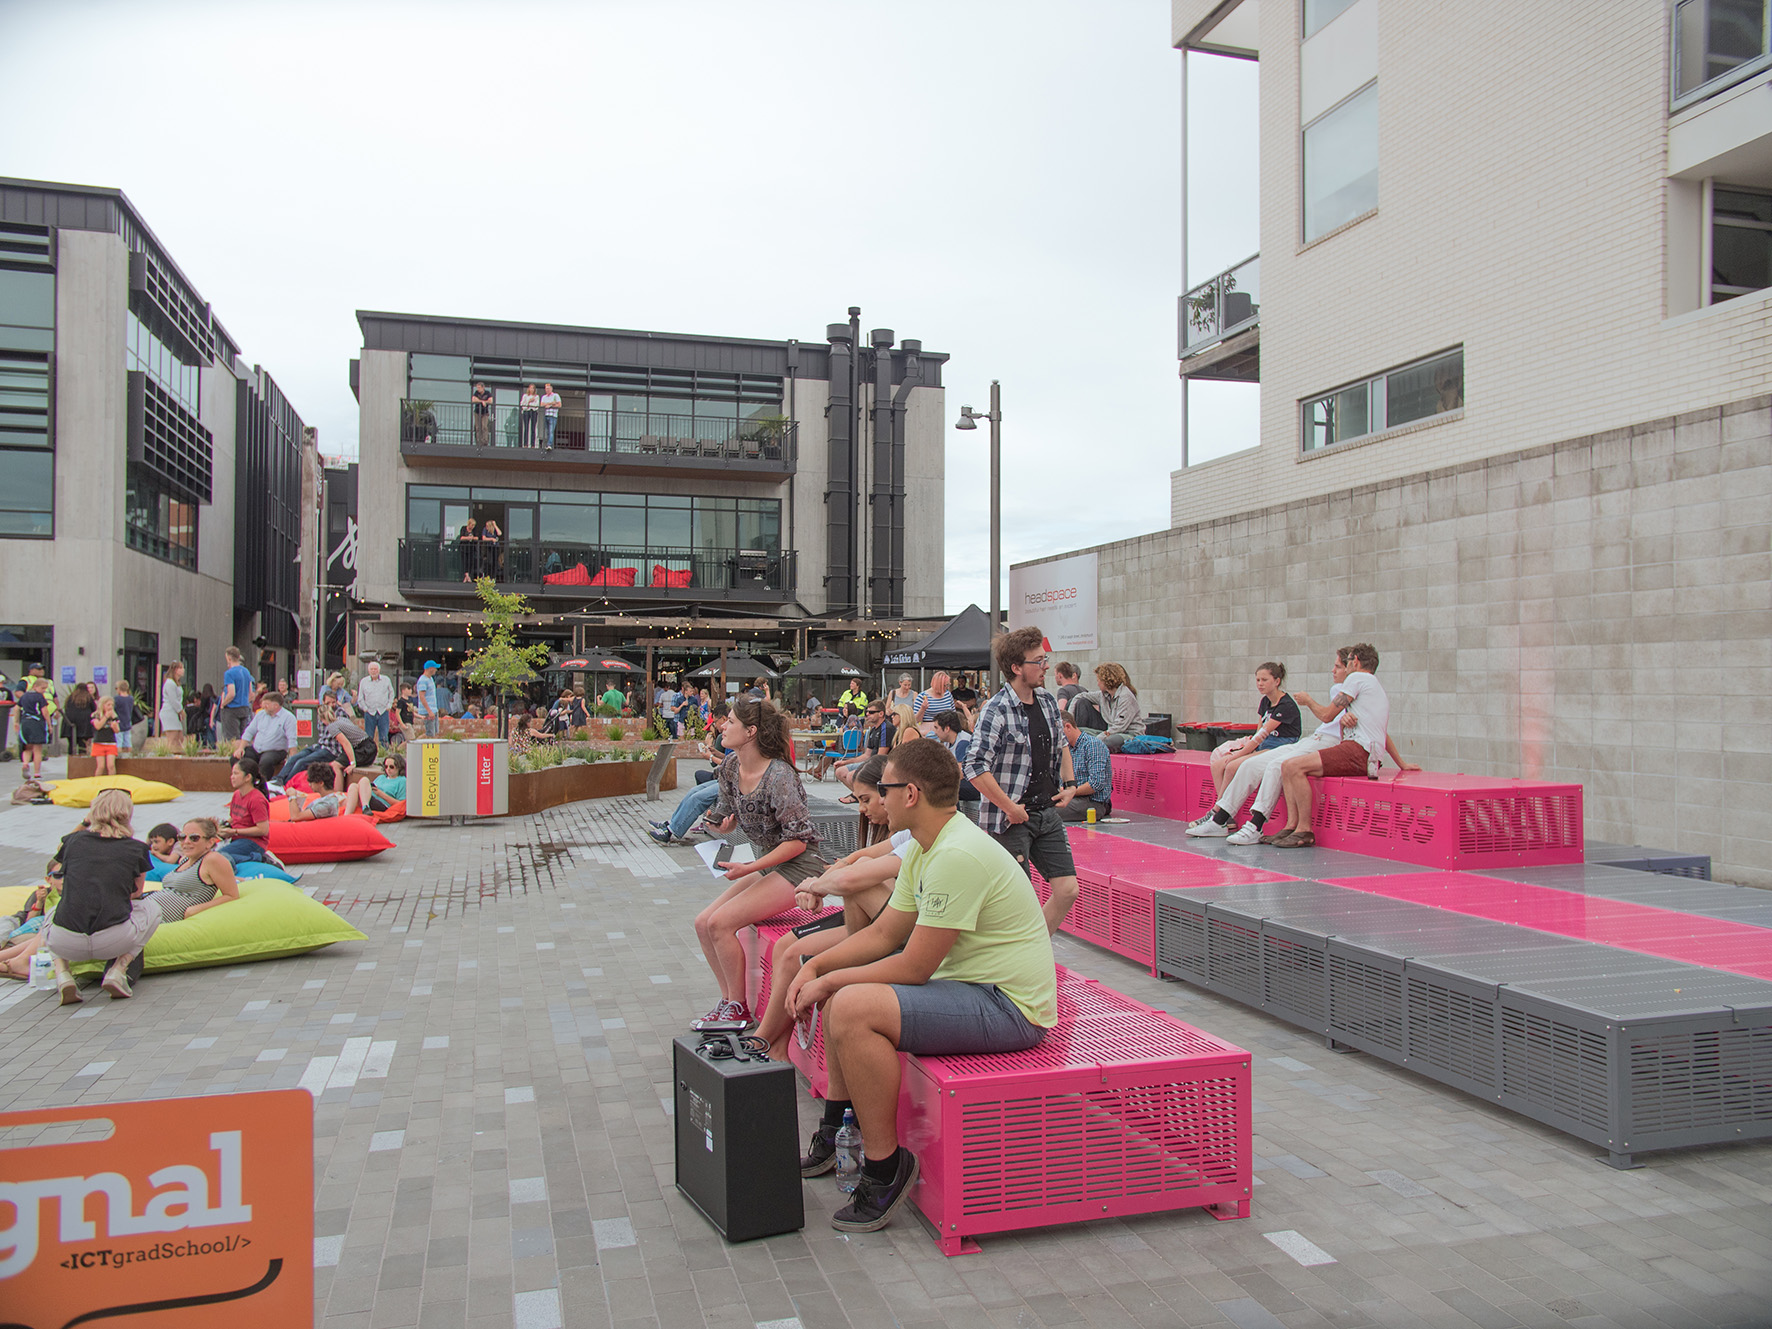 South Frame's Evolution Square is part of a network of laneways, shared zones, landscaped areas, integrated artworks, cultural narratives and event ready spaces.